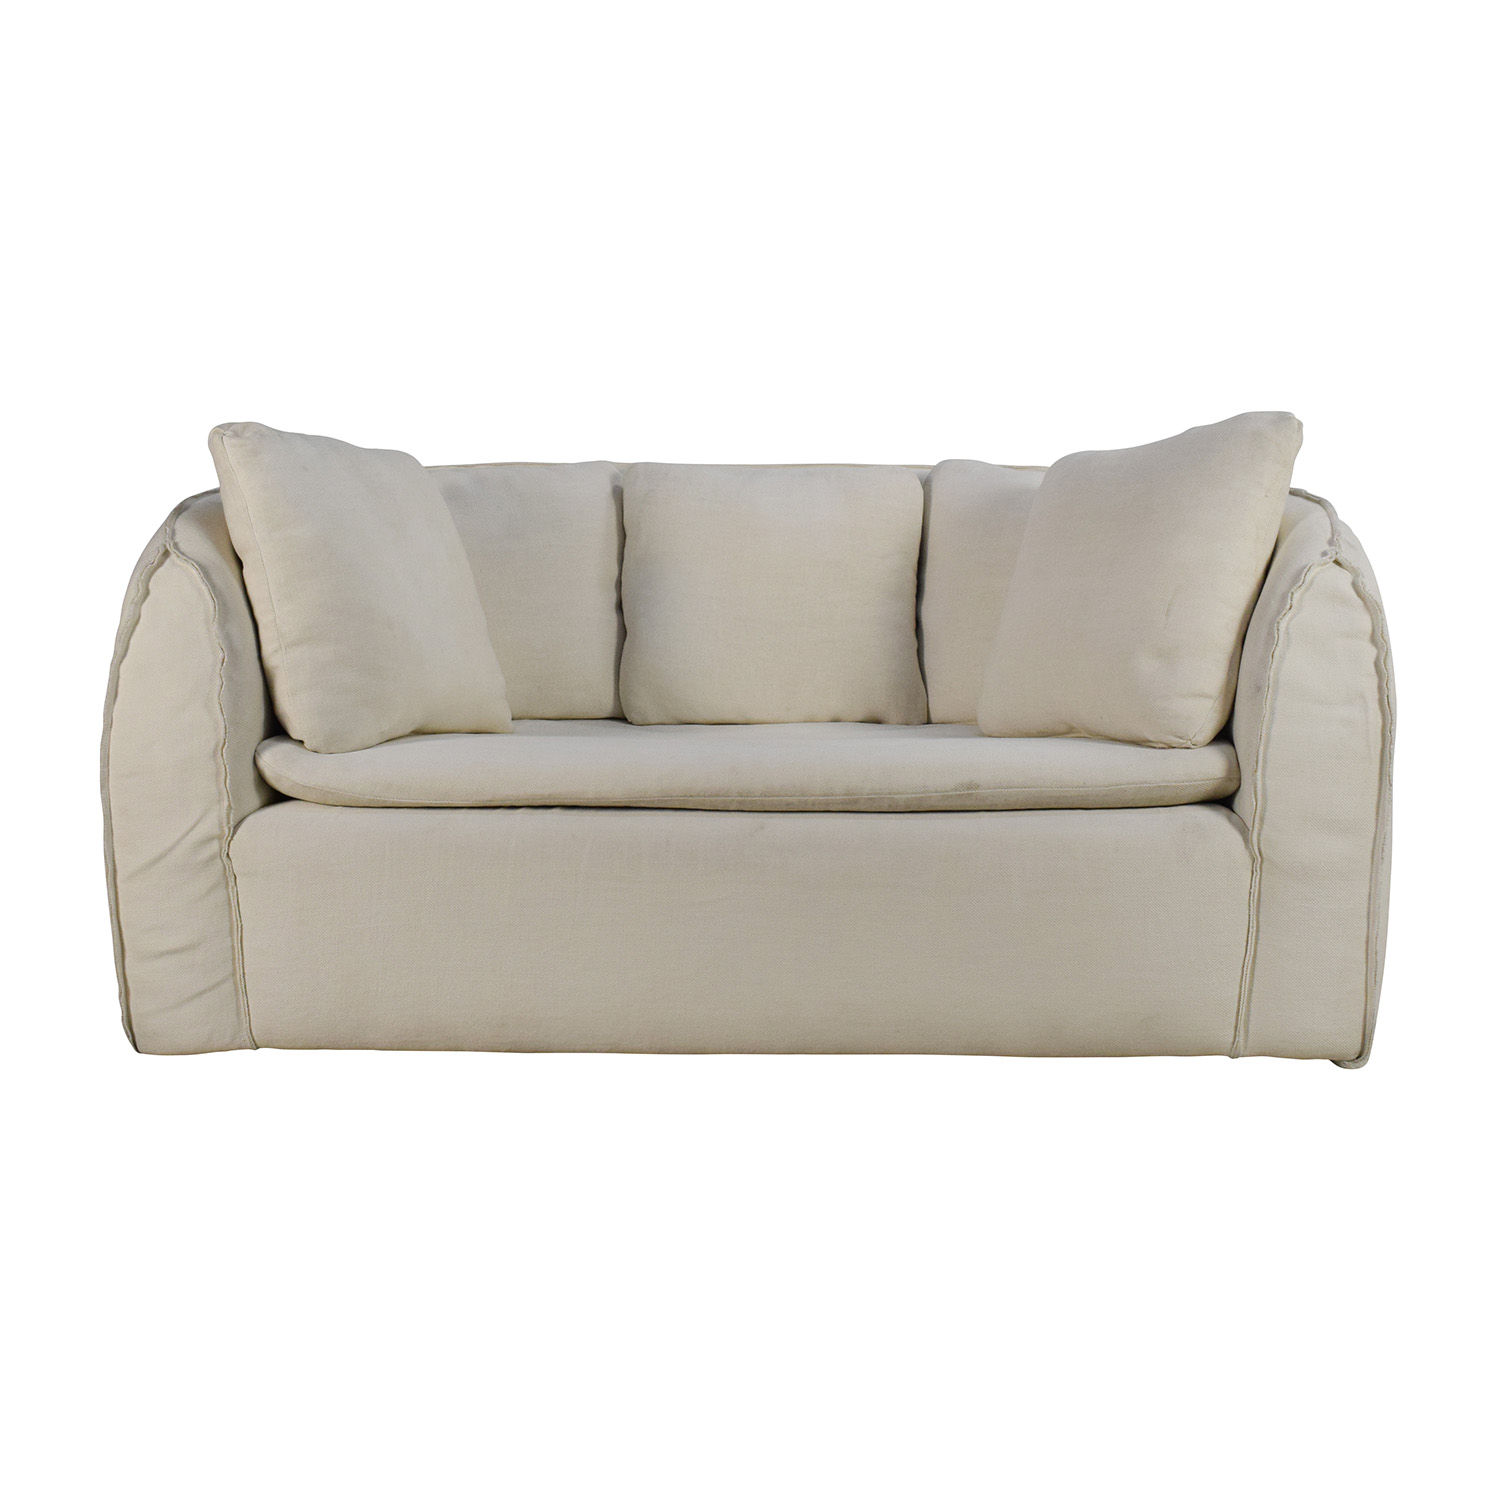 buy Environment Furniture Environment Furniture Pacifica White Linen Couch online